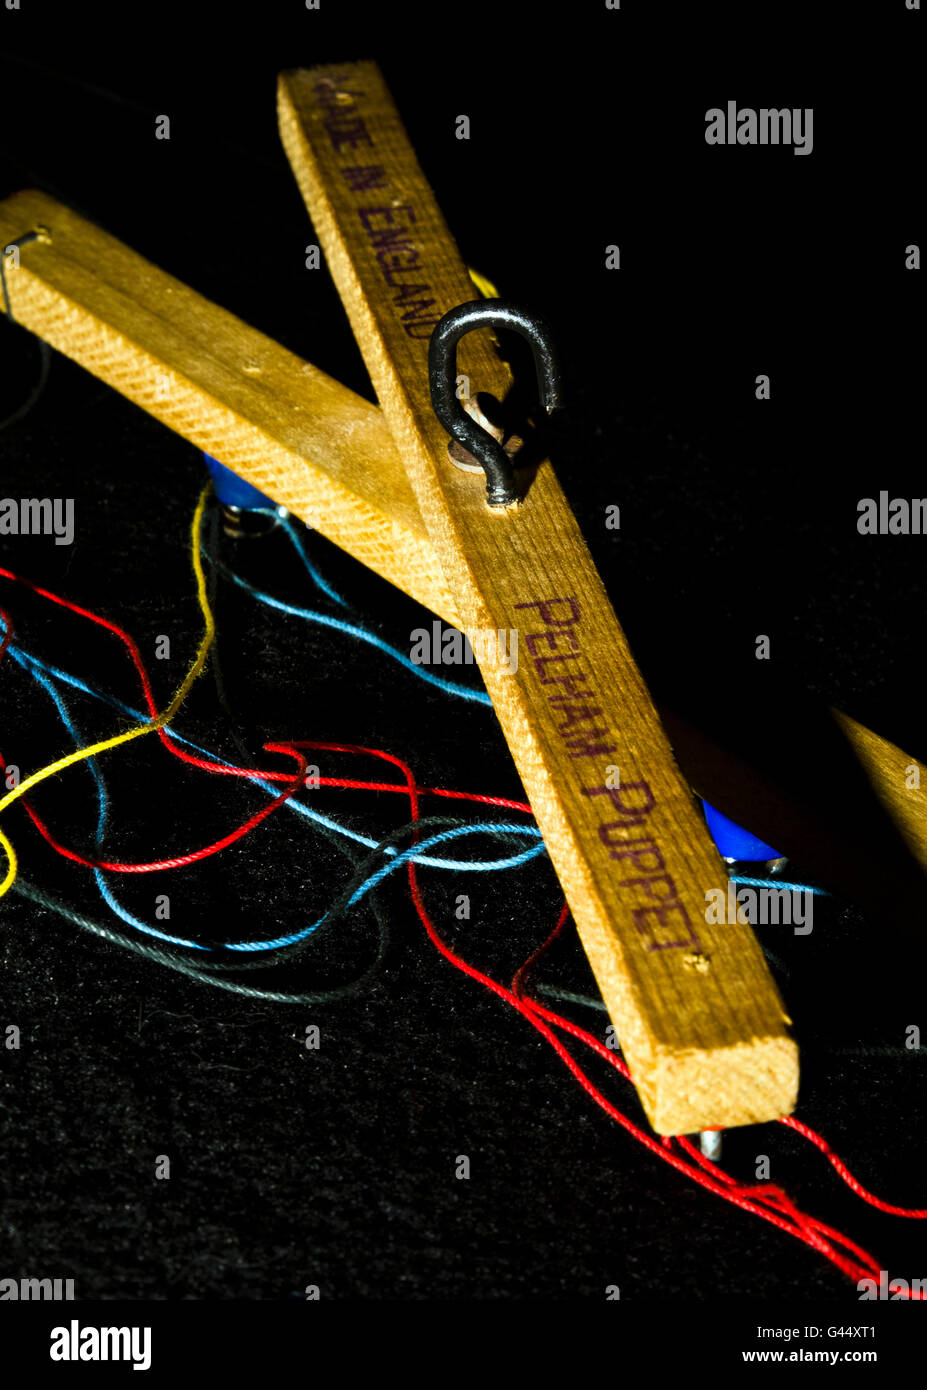 Close-up of a control bar for a string puppet - Stock Image